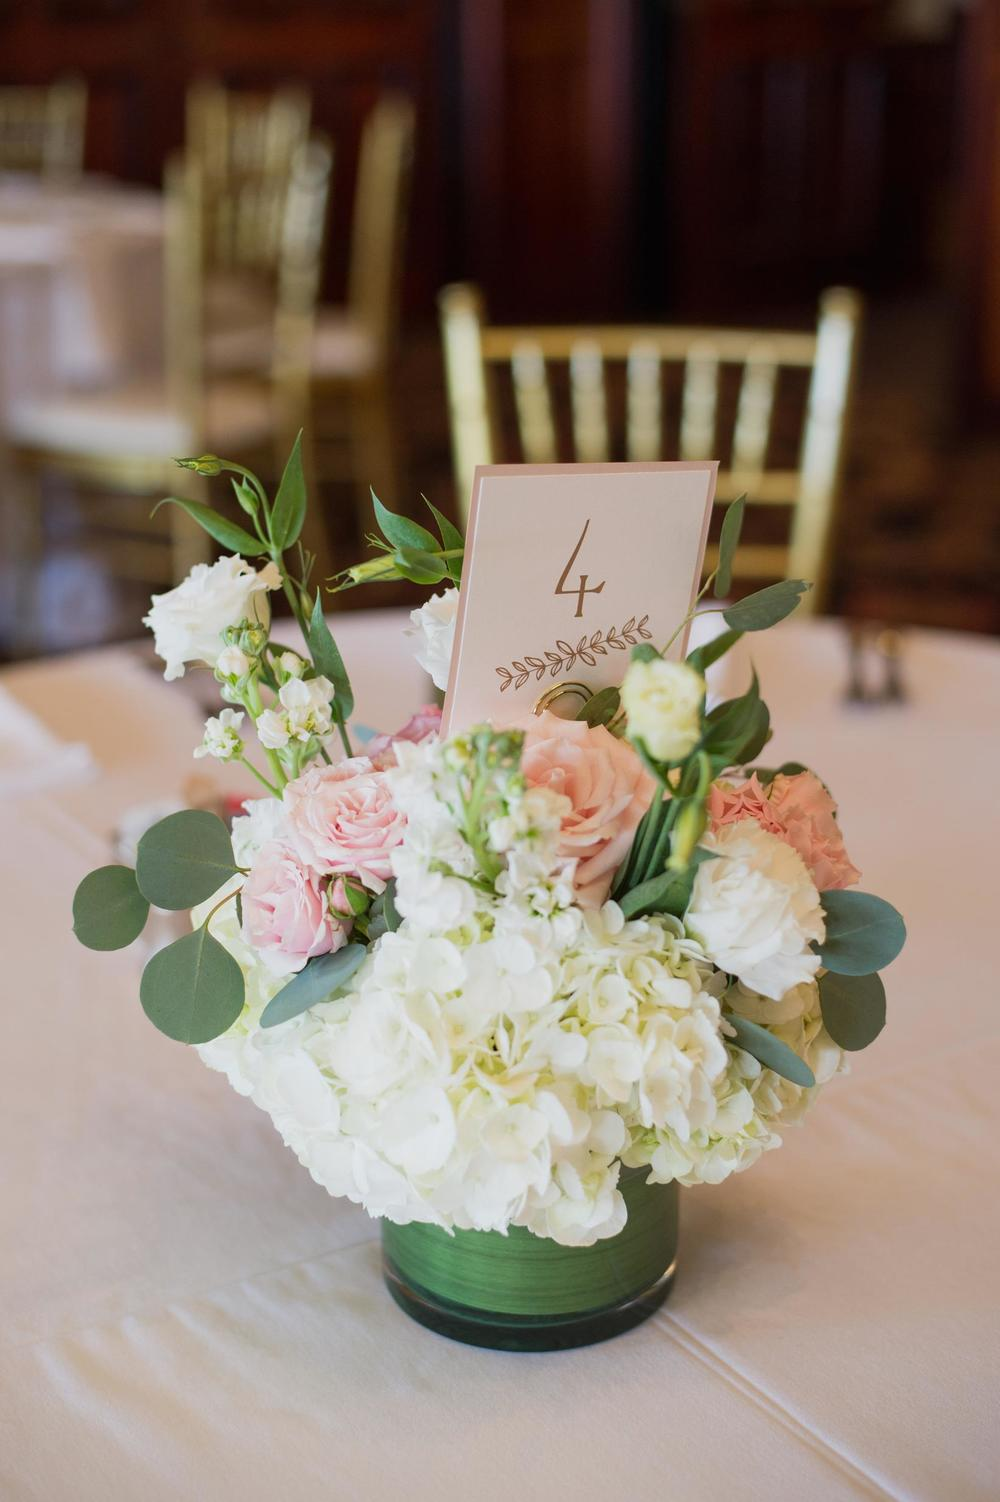 Low white pink centerpiece with Simply Personal table number